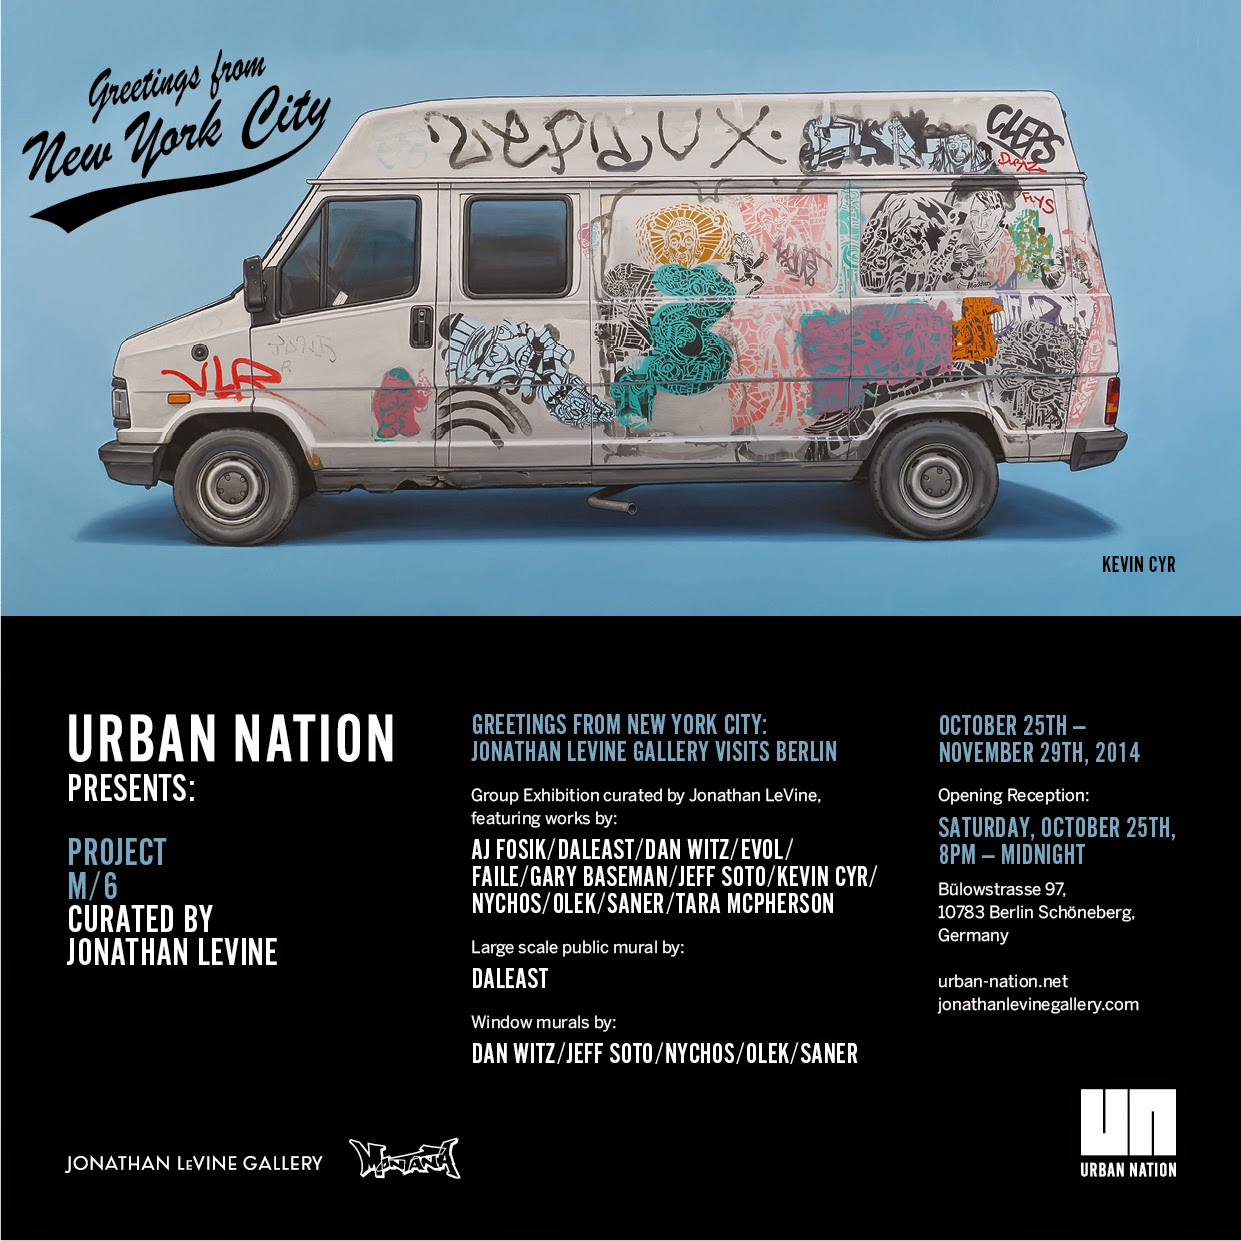 Later this month, our friends at Urban Nation will be opening the Project M/6 which is curated by Jonathan Levine.